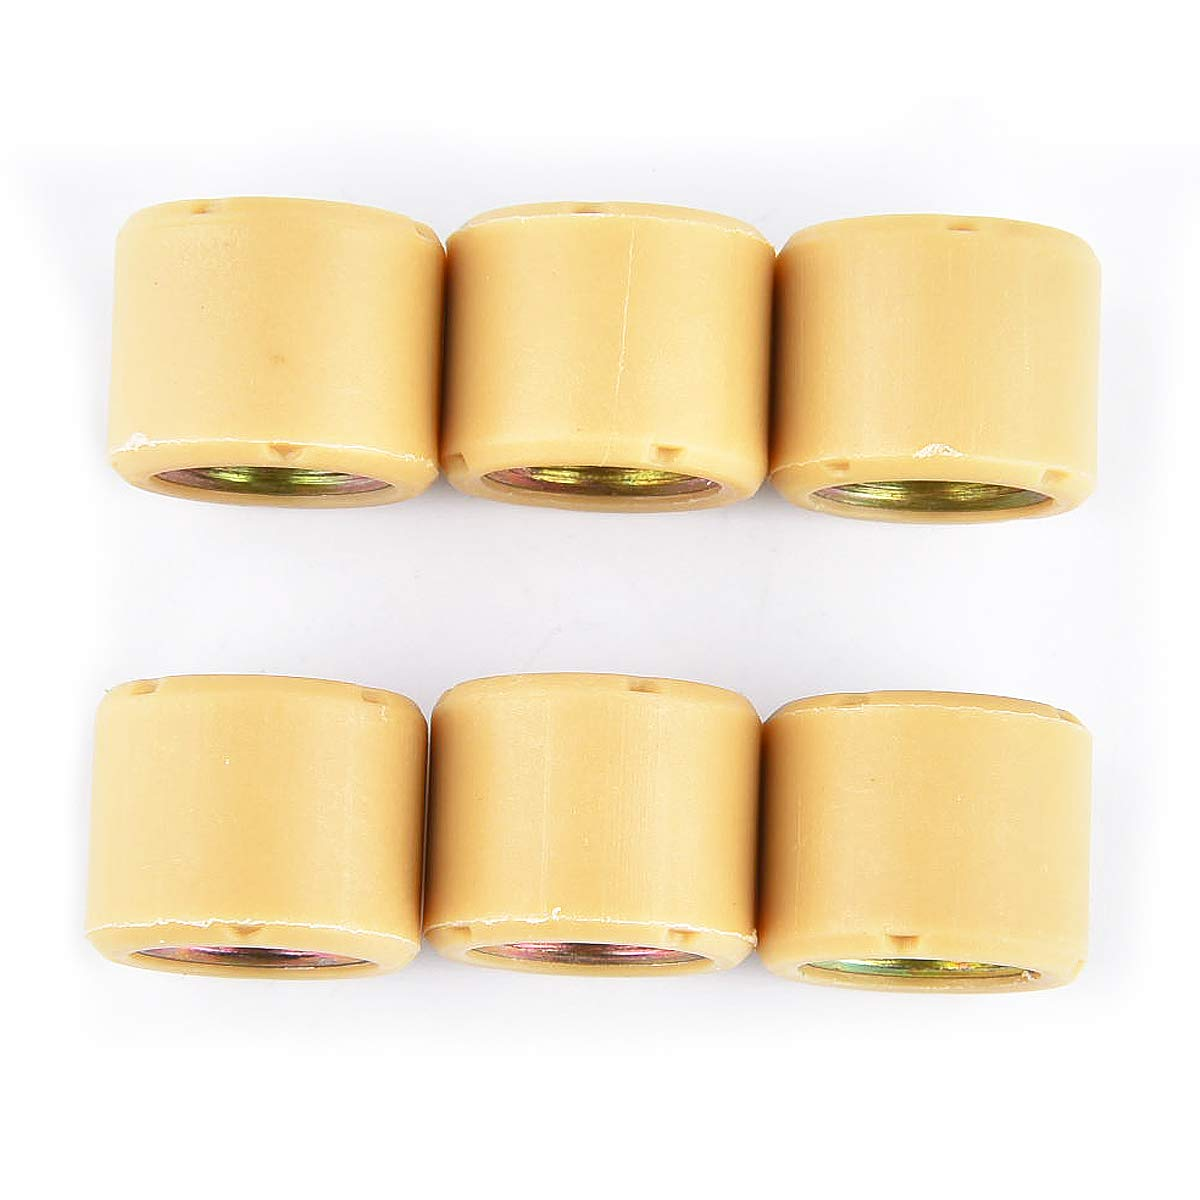 High Performance Racing Driving Wheel Roller 5.5 Gram Weight Set for GY6 50CC 139QMB 49cc 50cc Scooter Moped Jonway ATV